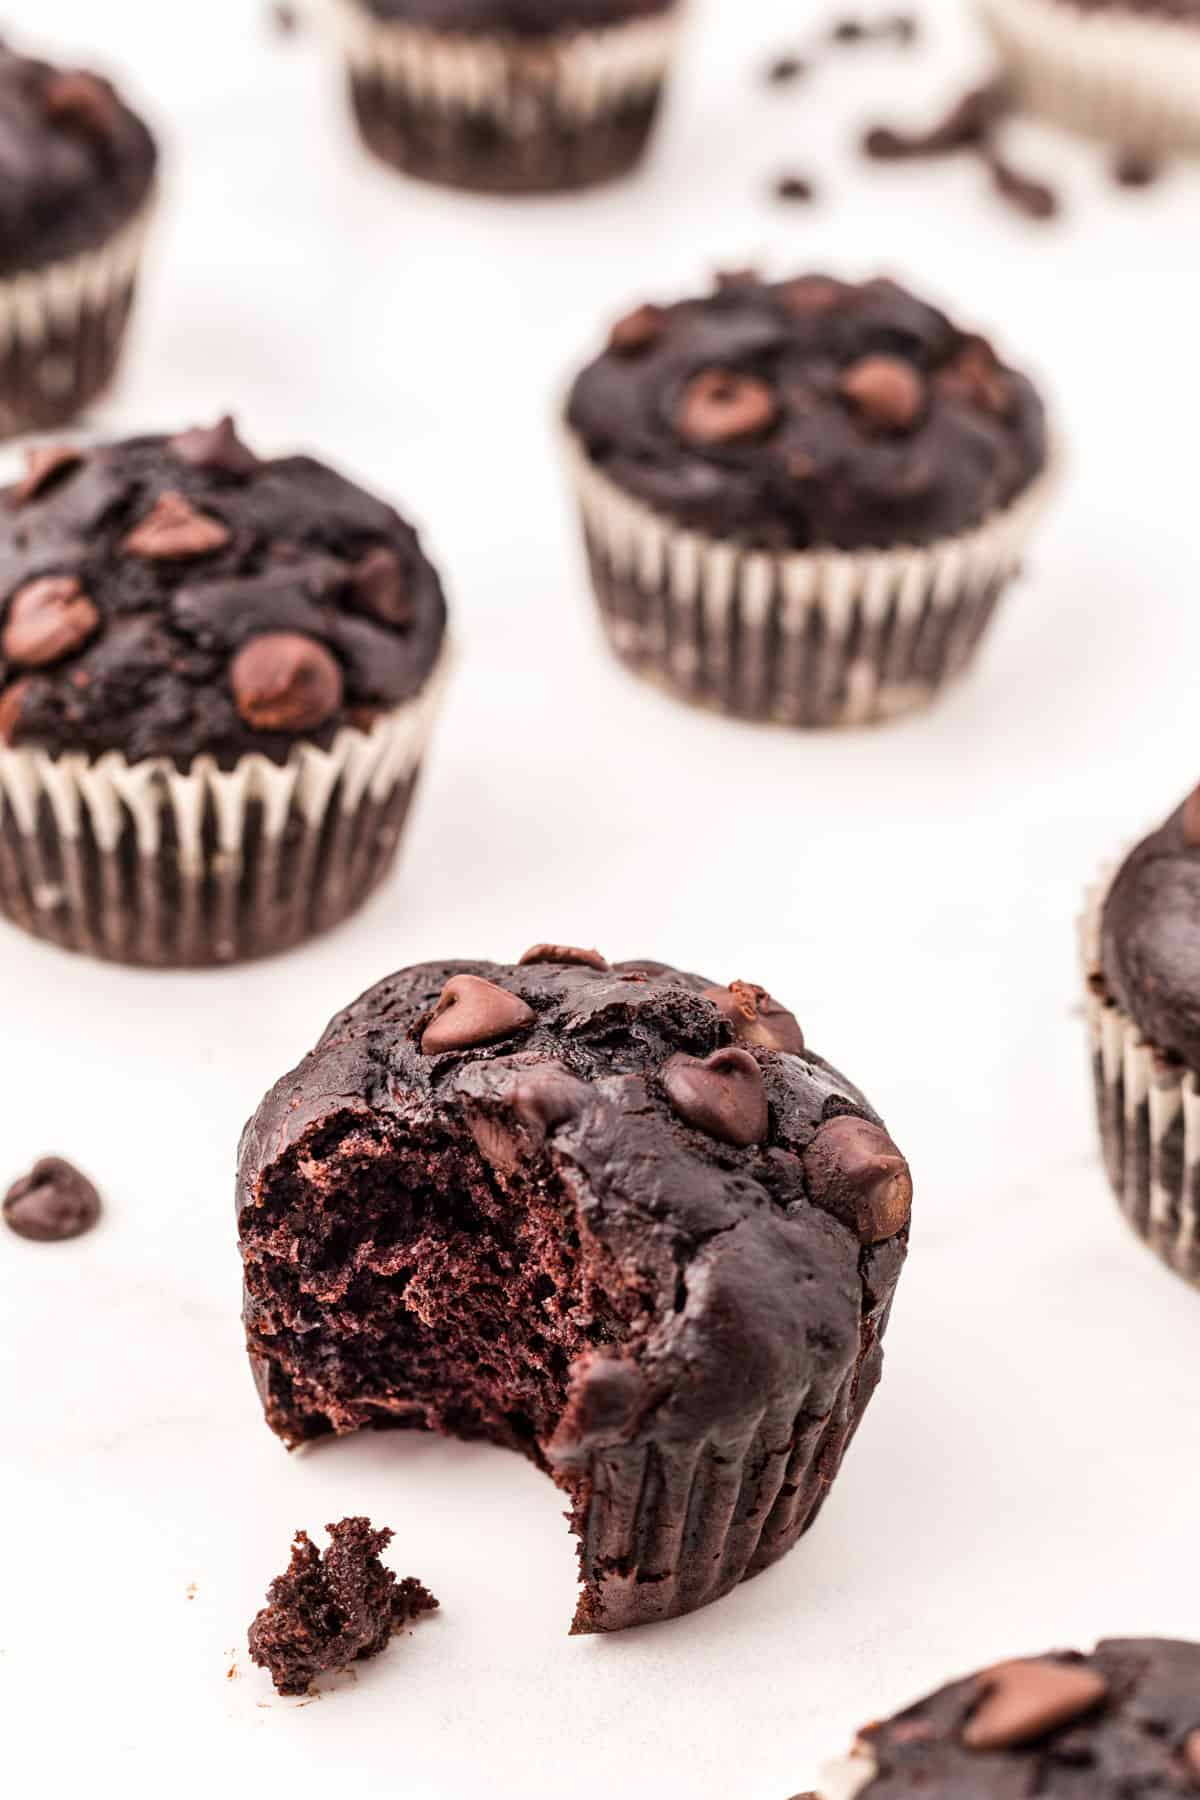 Chocolate zucchini muffins with one bite removed.